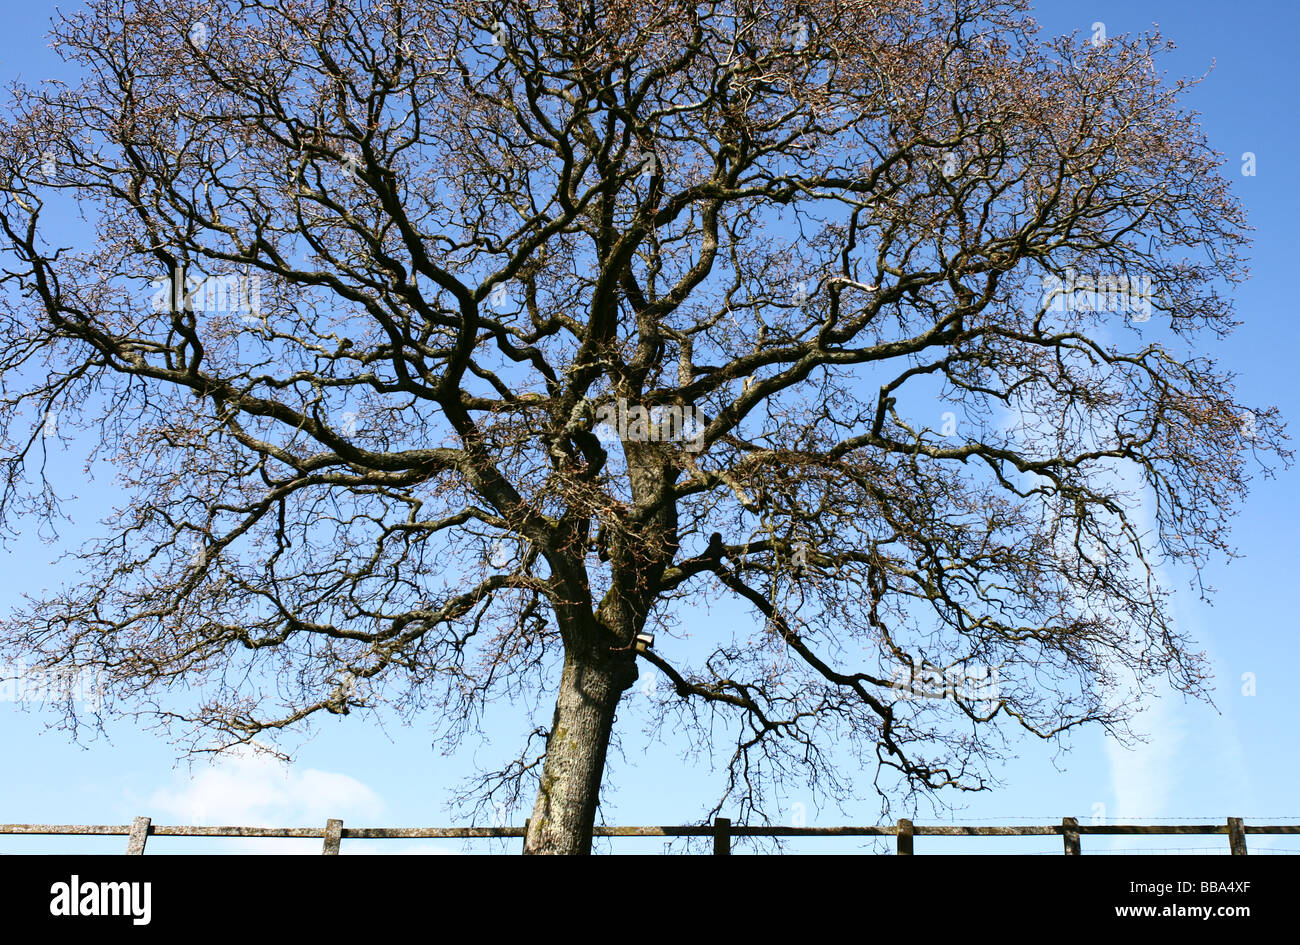 Leafless tree against blue sky, with a fence - Stock Image